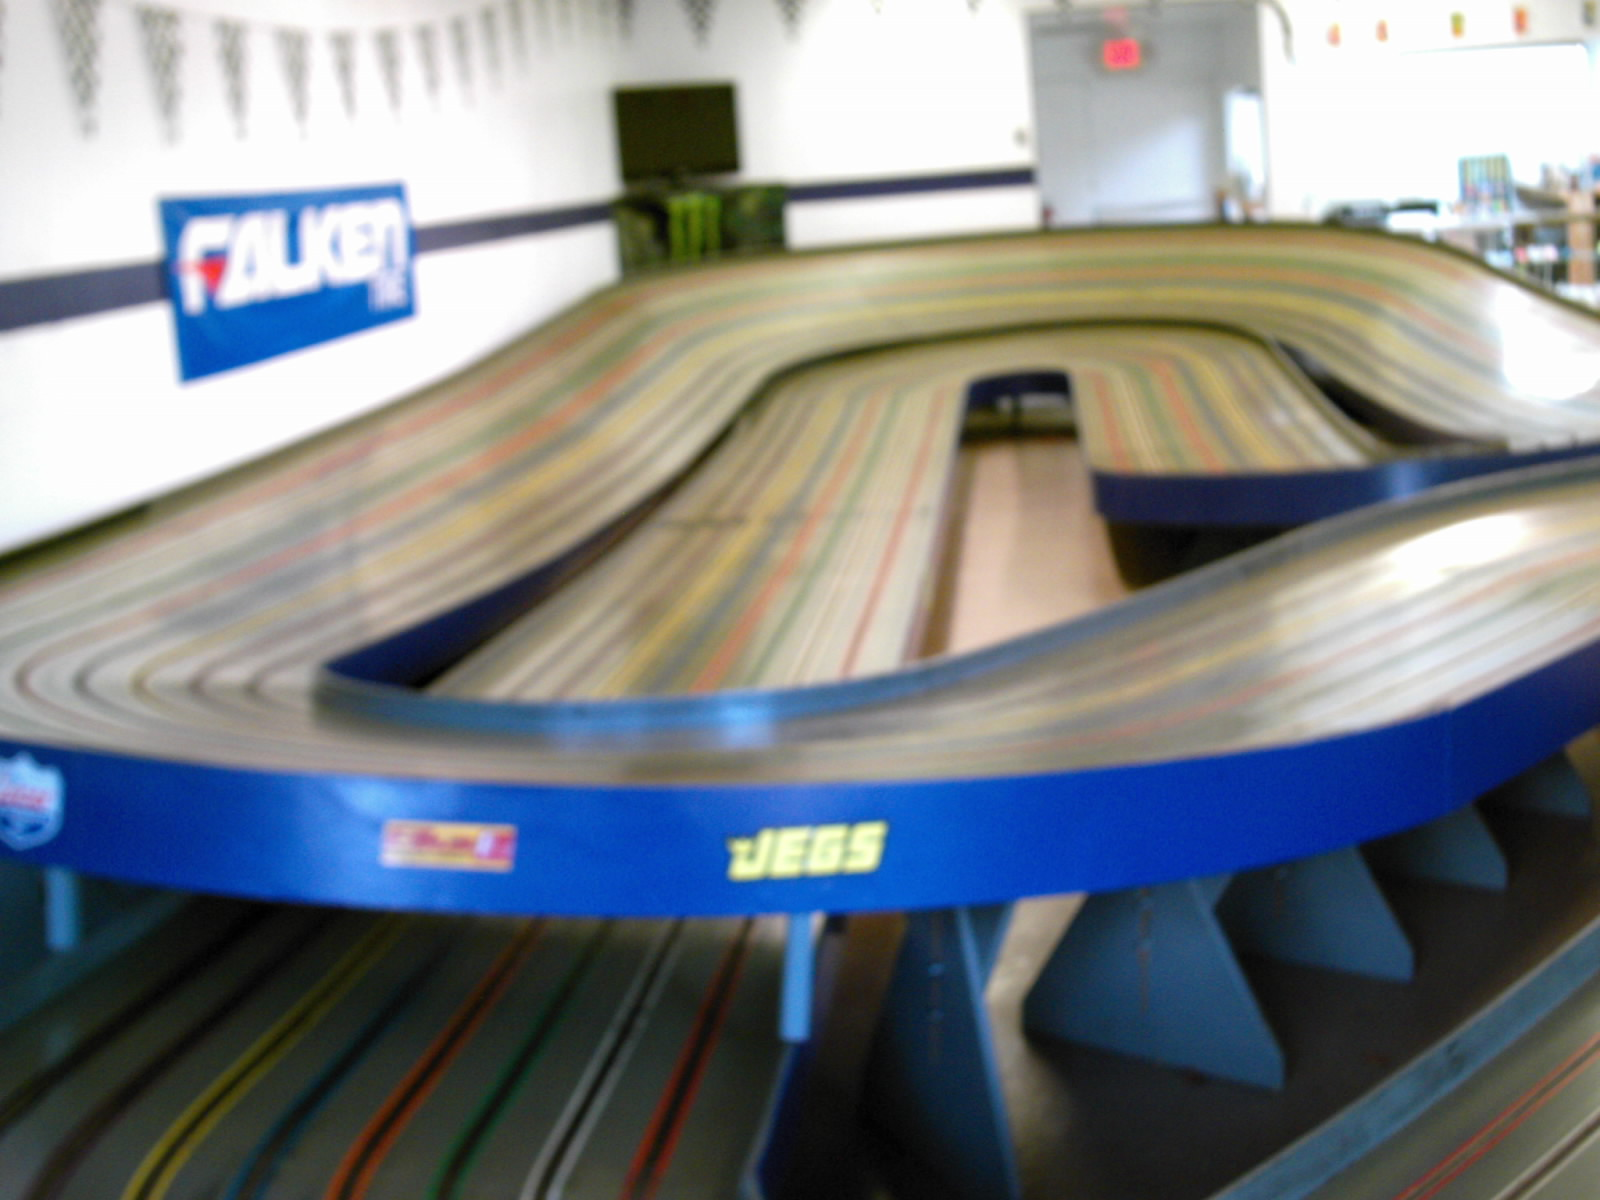 slot car track and bussiness document sighn on 009.JPG